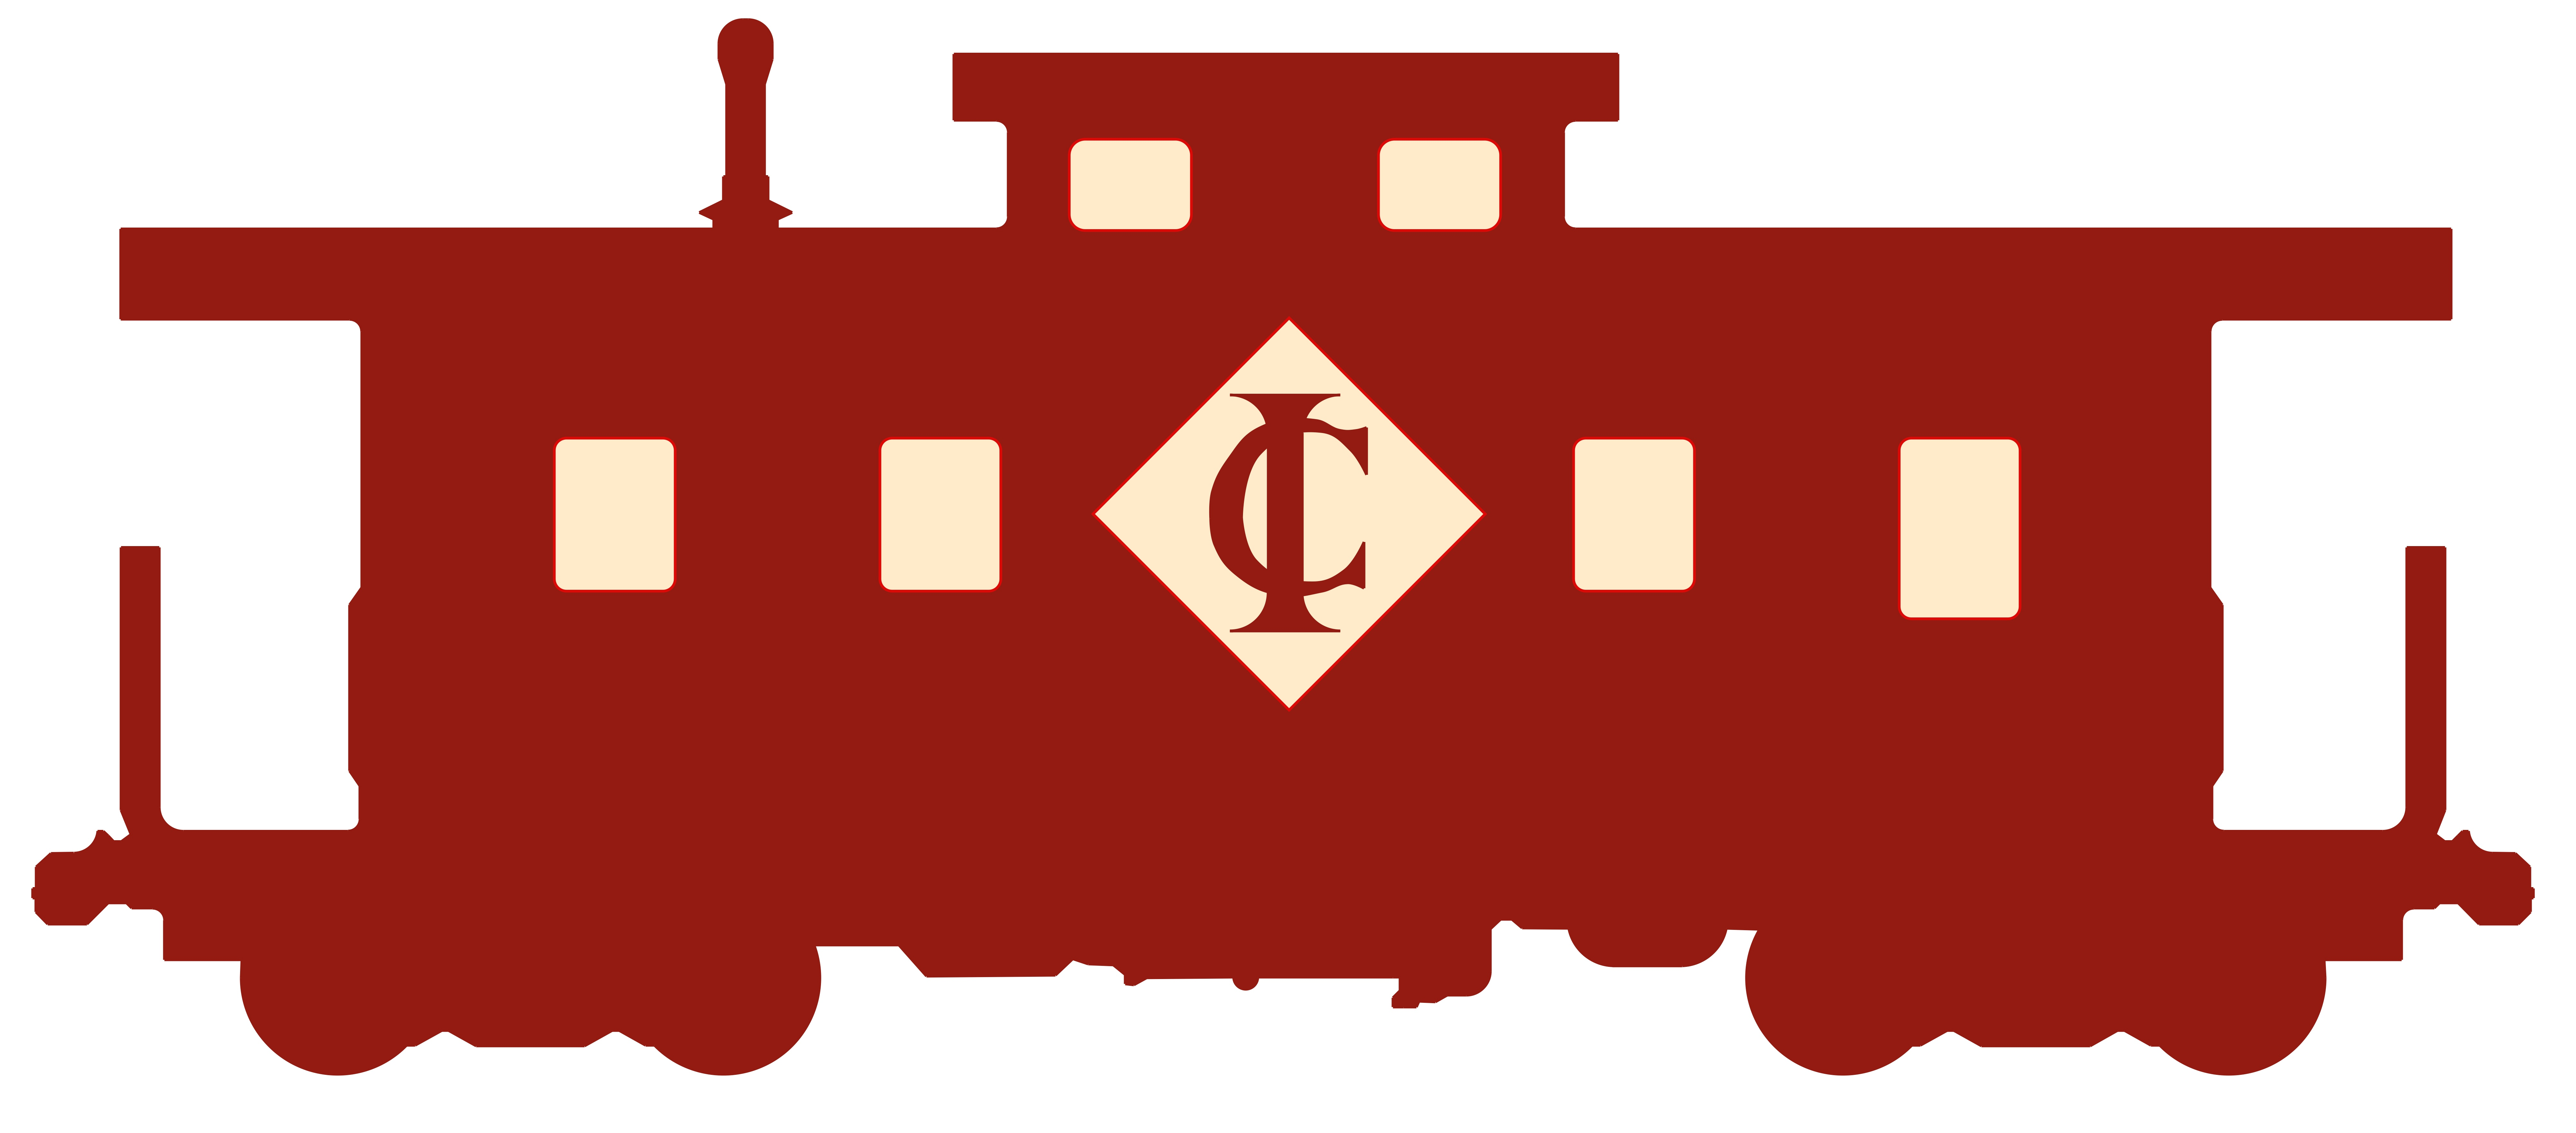 Caboose clipart little red caboose. Industries manual ground throws